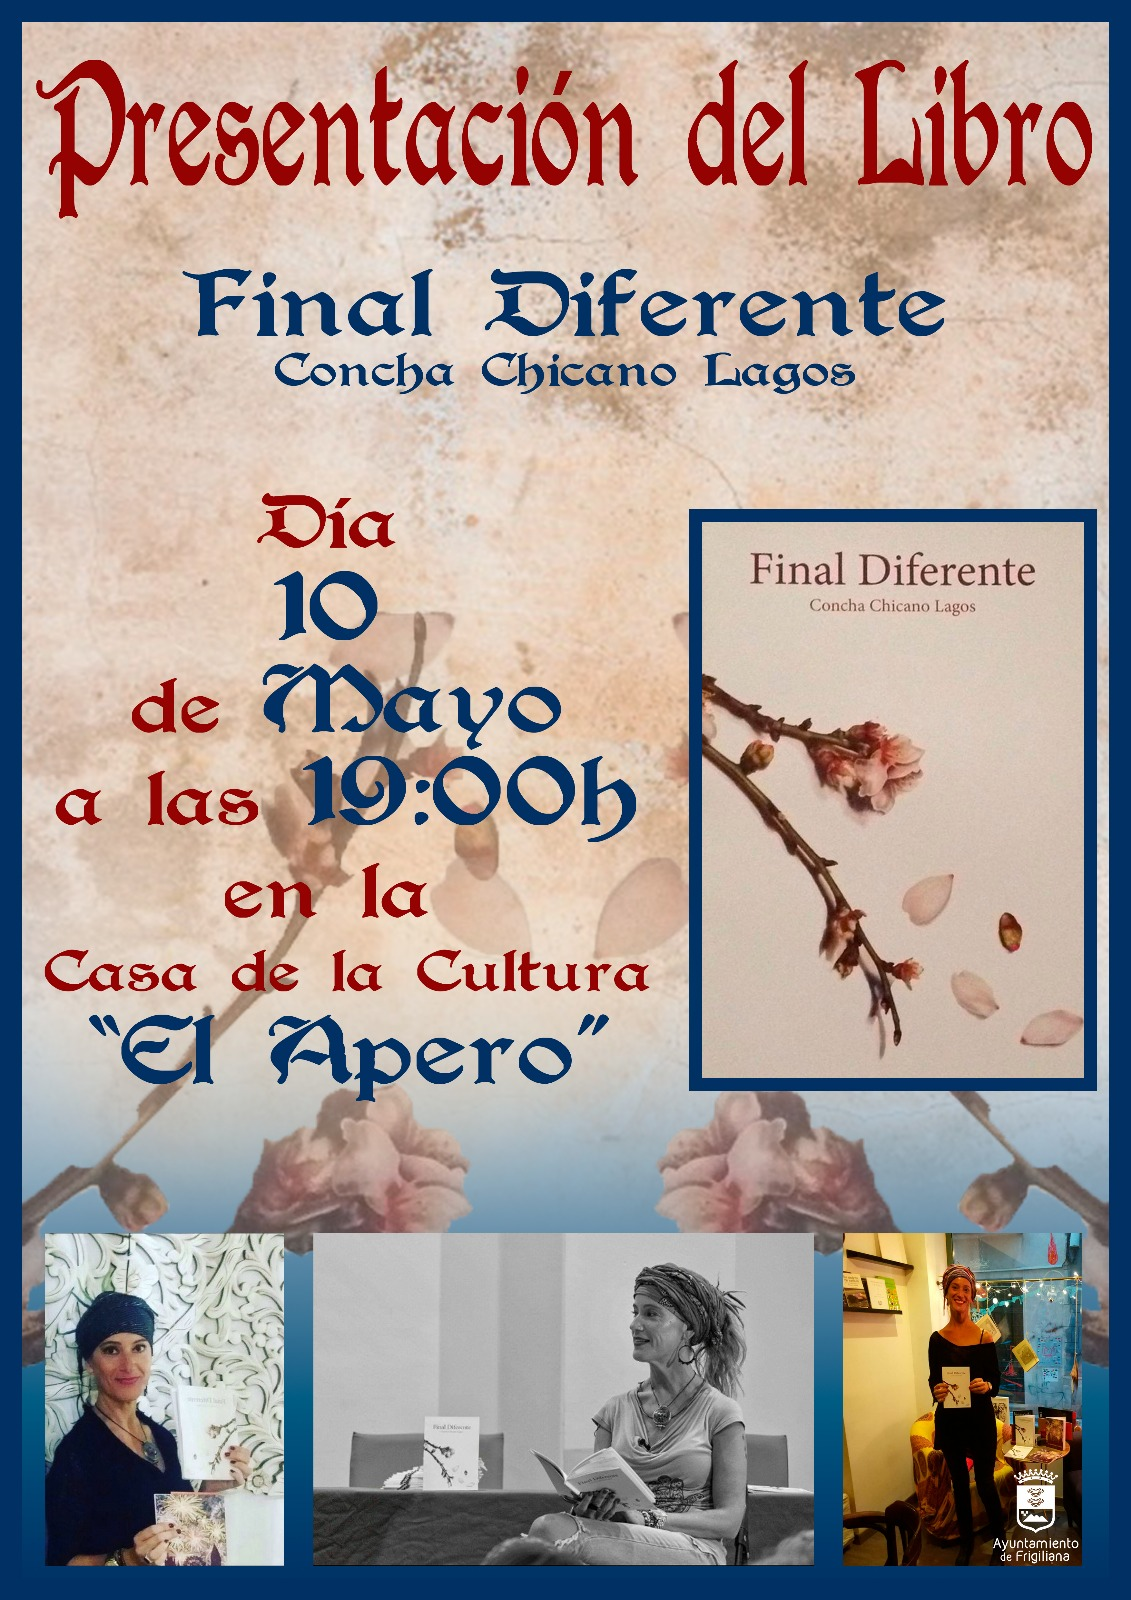 Presentation of the book 'Final Diferente' by Concha Chicano Lagos